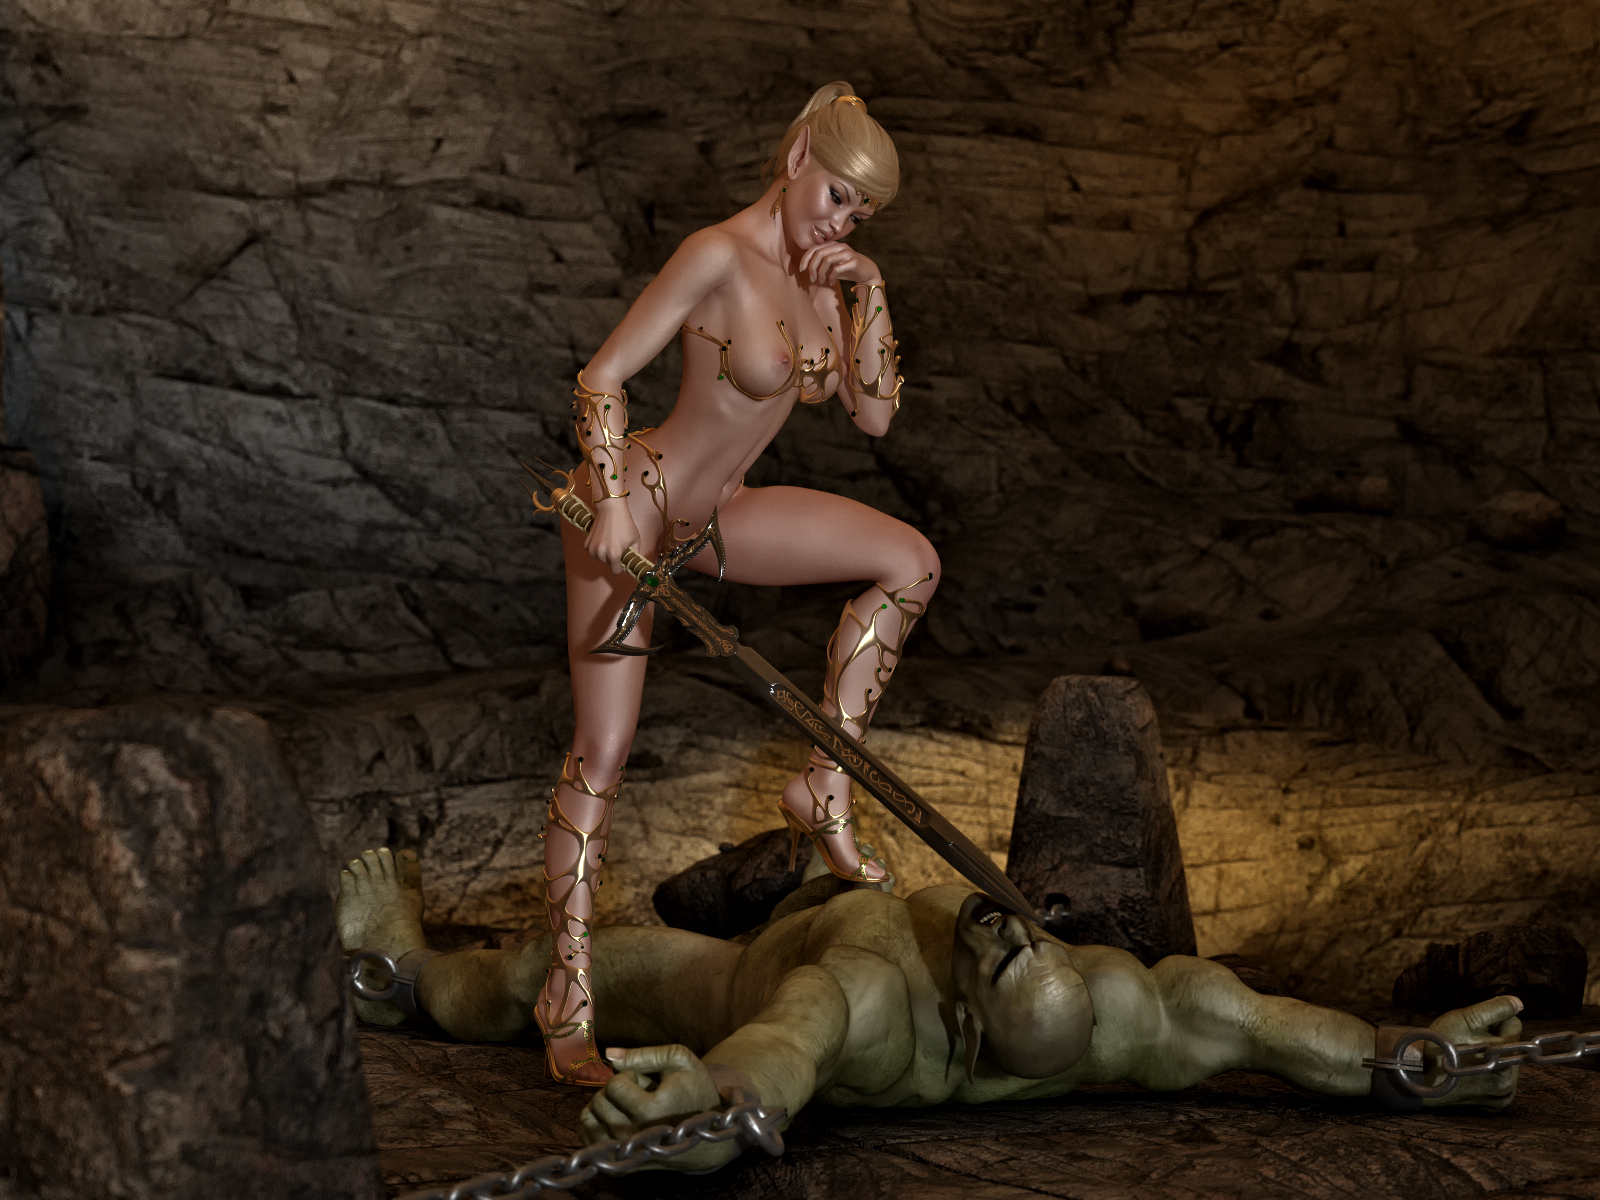 Warrior woman forced sex video sexy movies